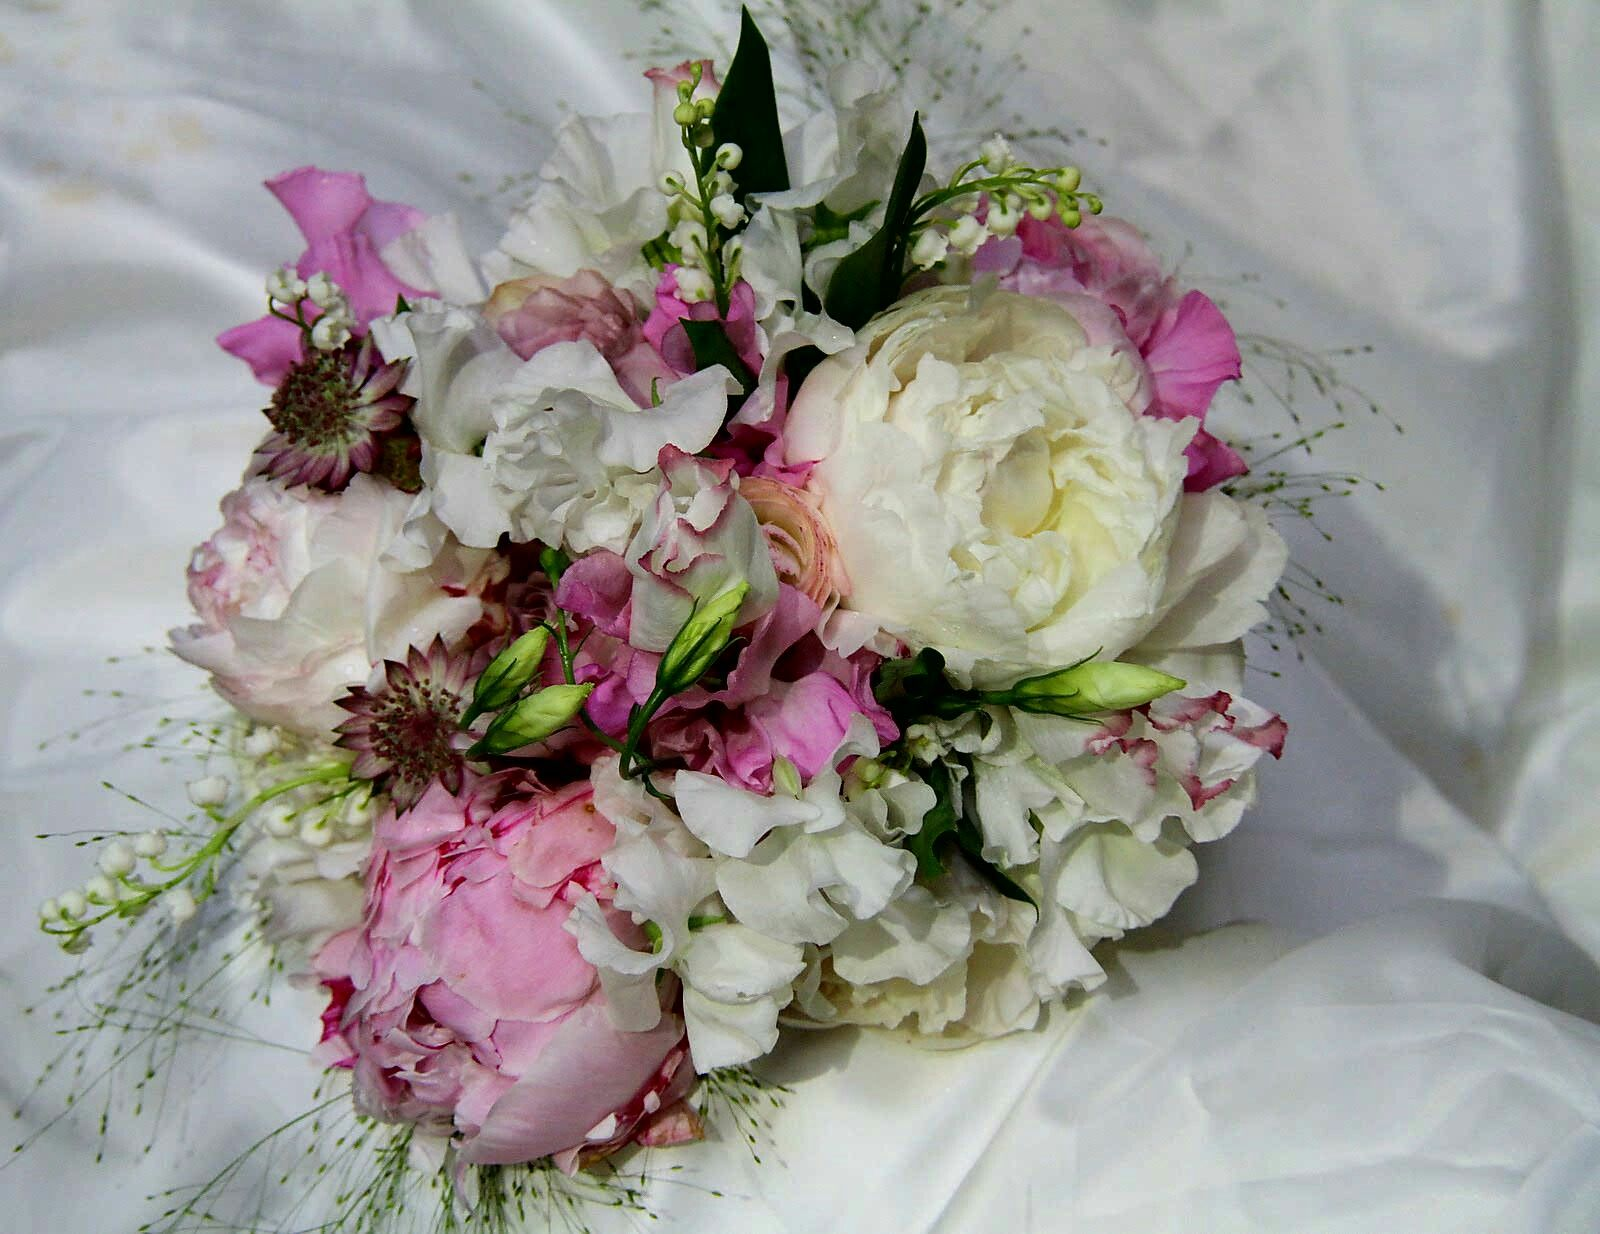 Dreamy Wedding Bouquet Arranged With: White Lily Of The